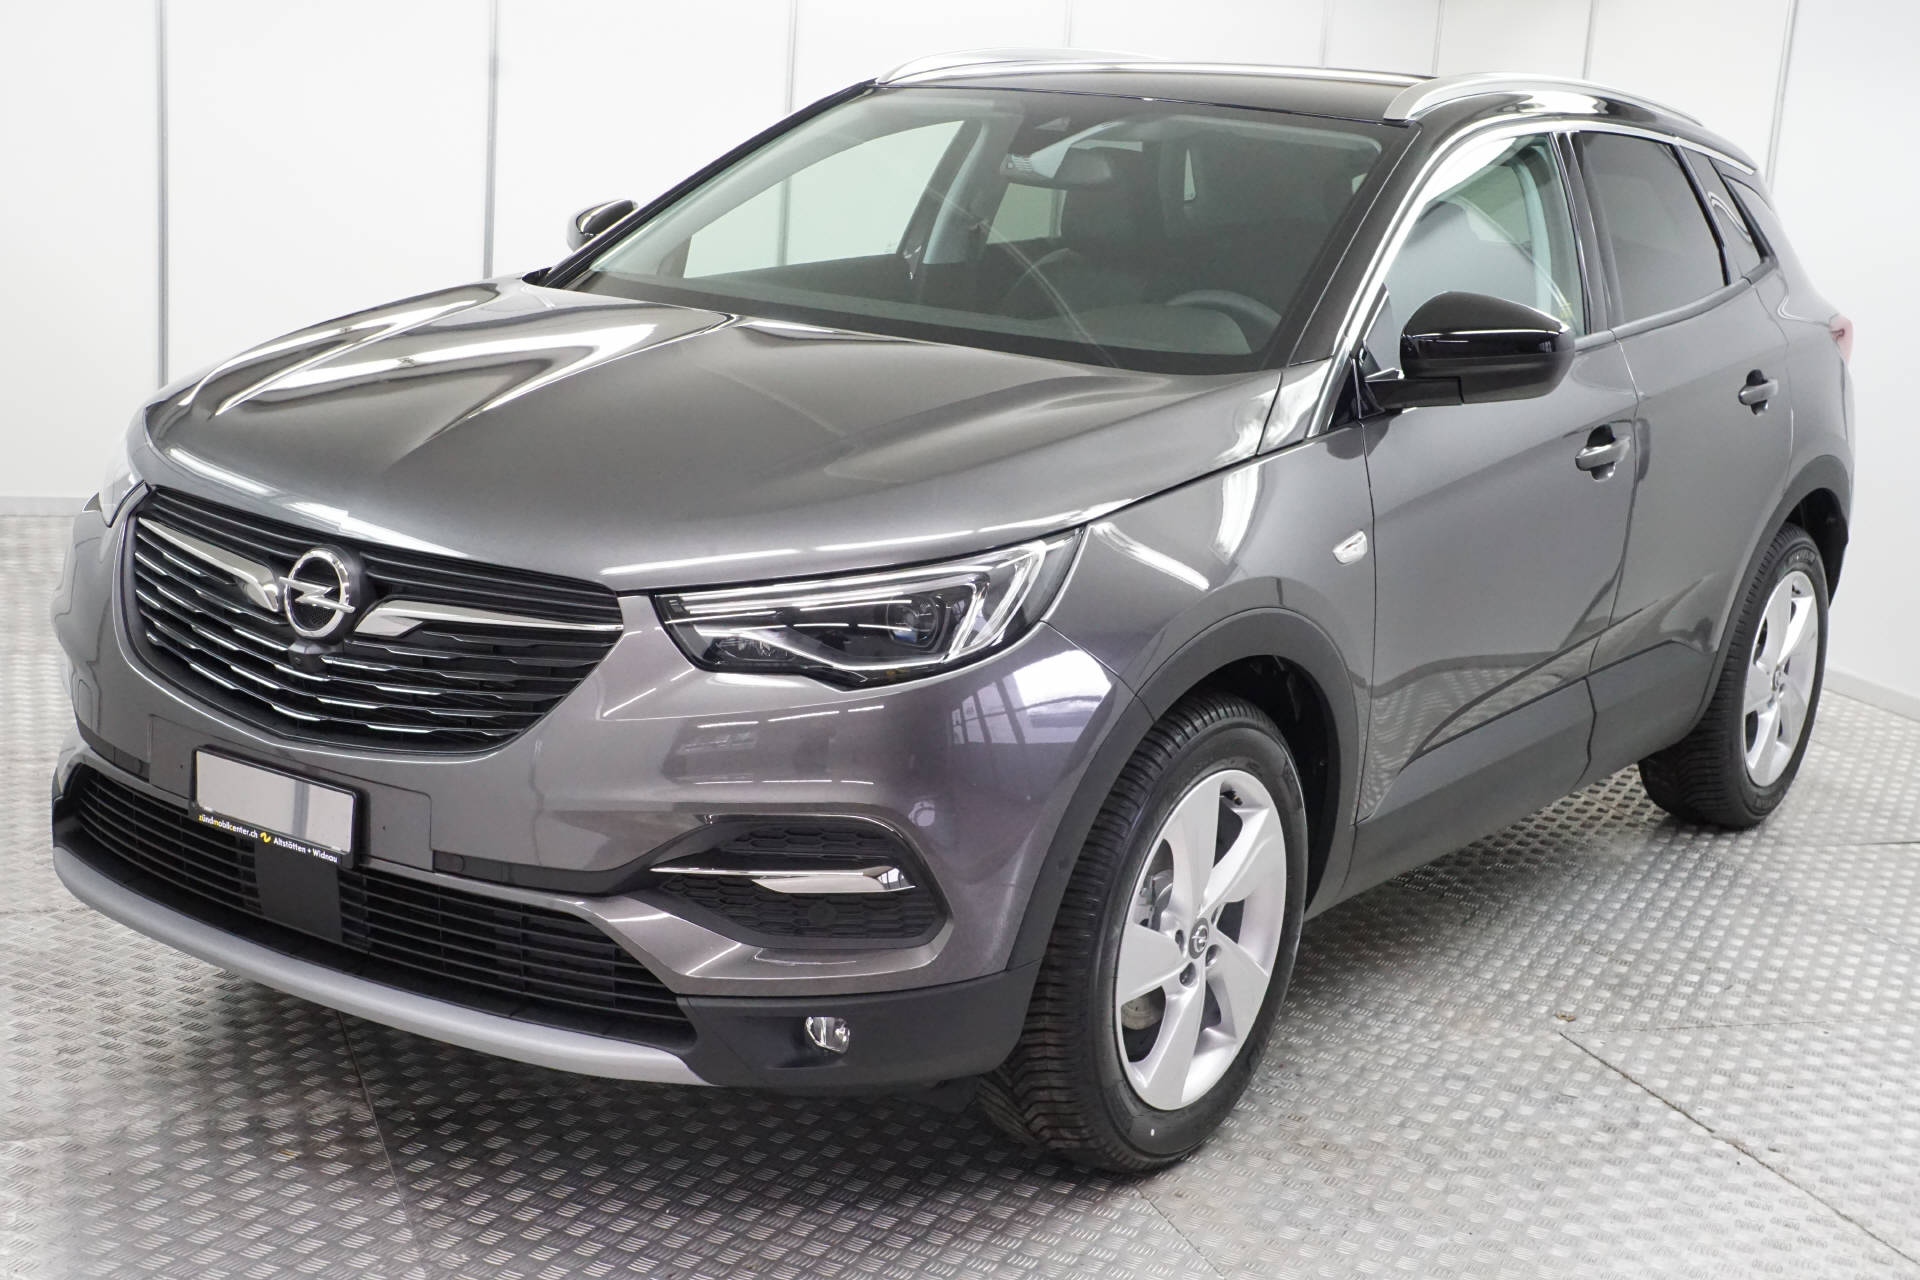 Kindersitz Test Suv Buy Suv Opel Grandland X 1 2 T Ultimate On Carforyou Ch